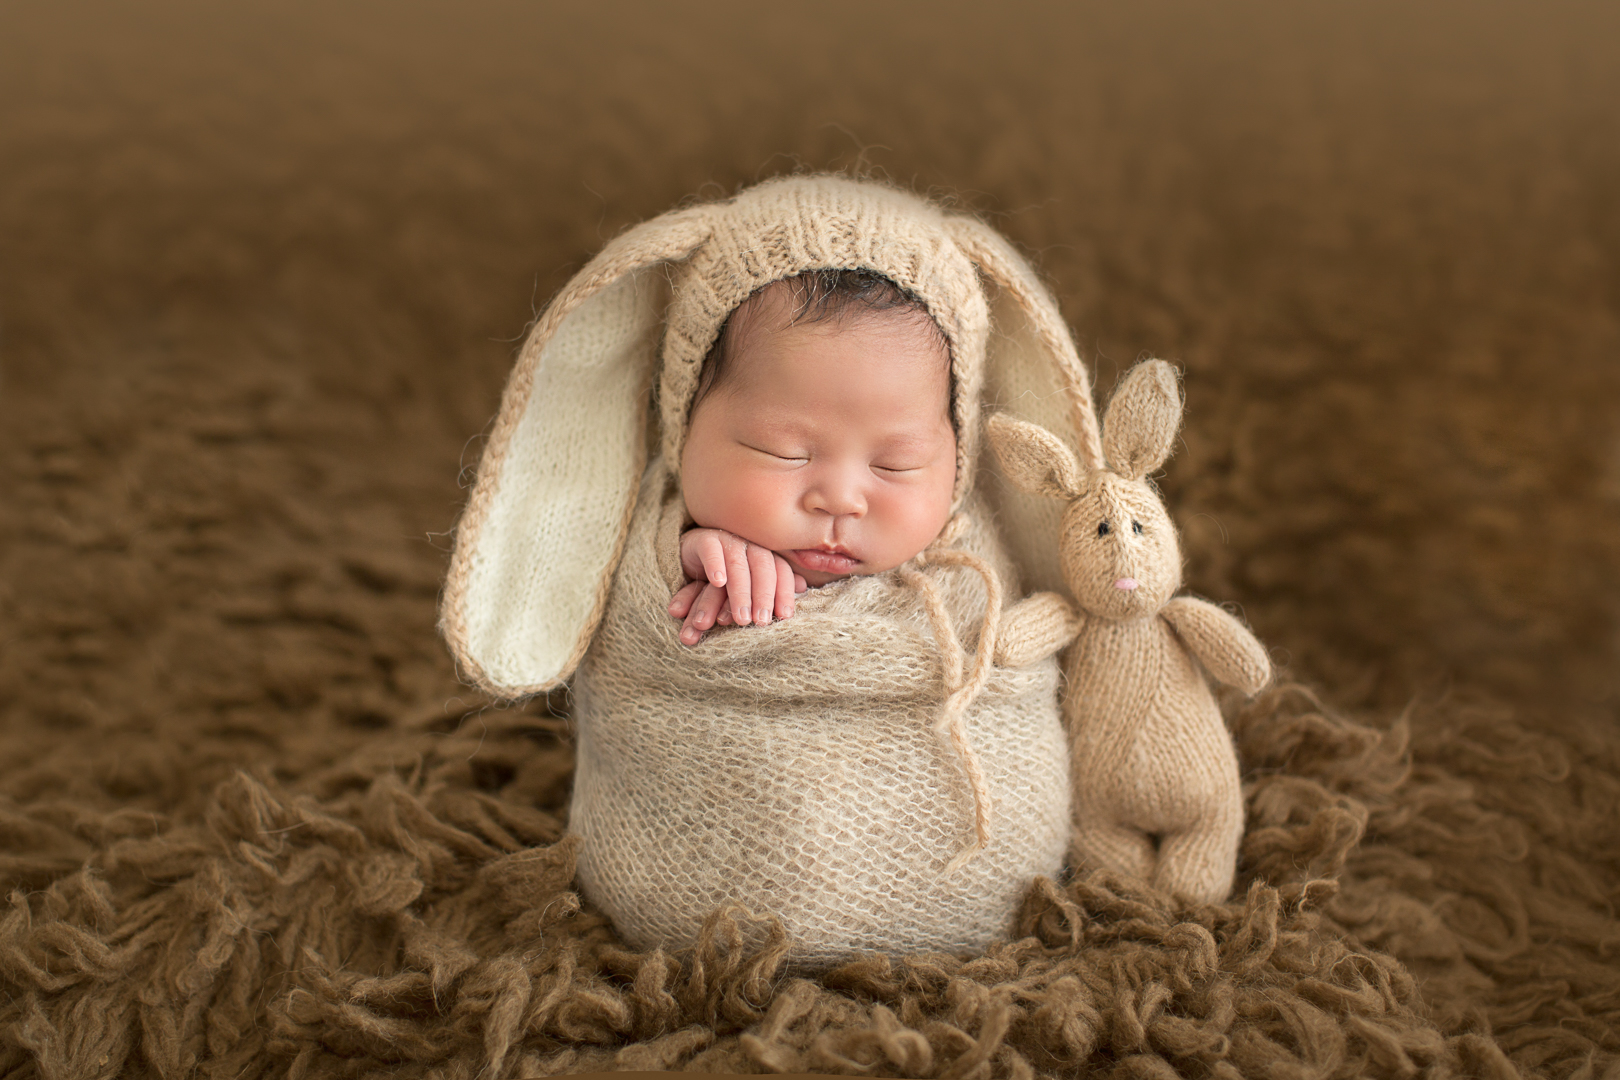 Newborn Potato Sack Bunny